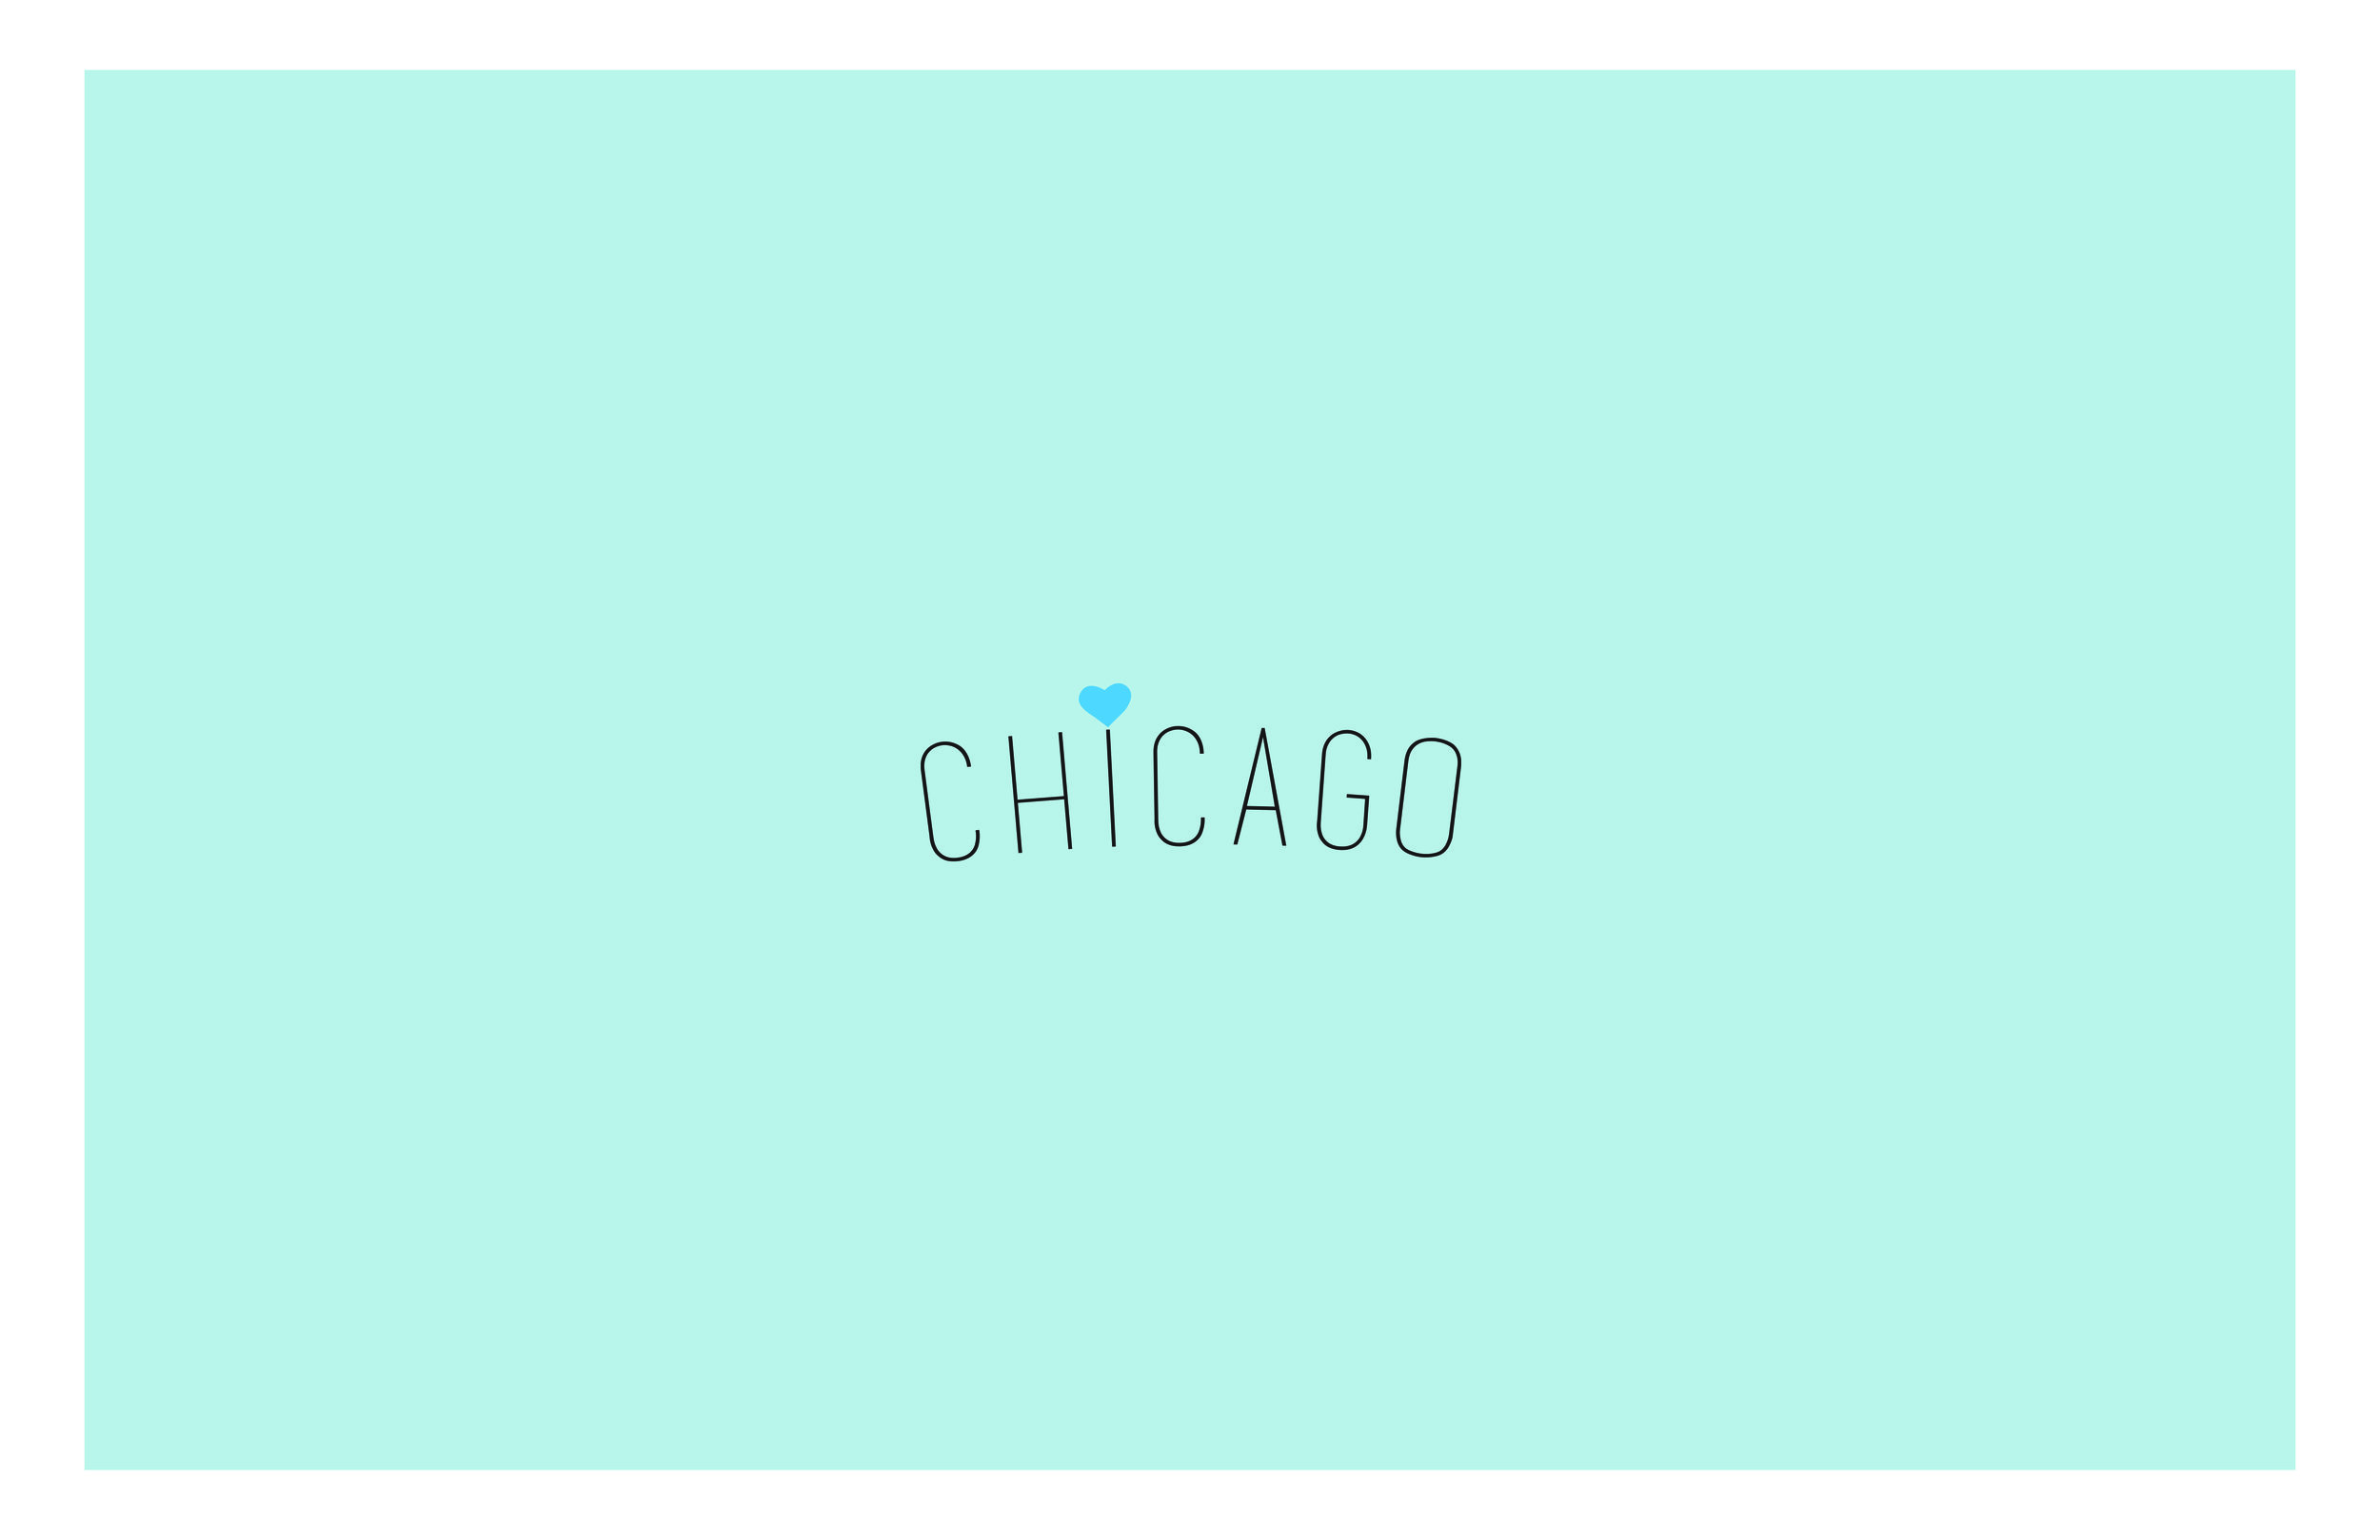 Chicago_logo.jpg